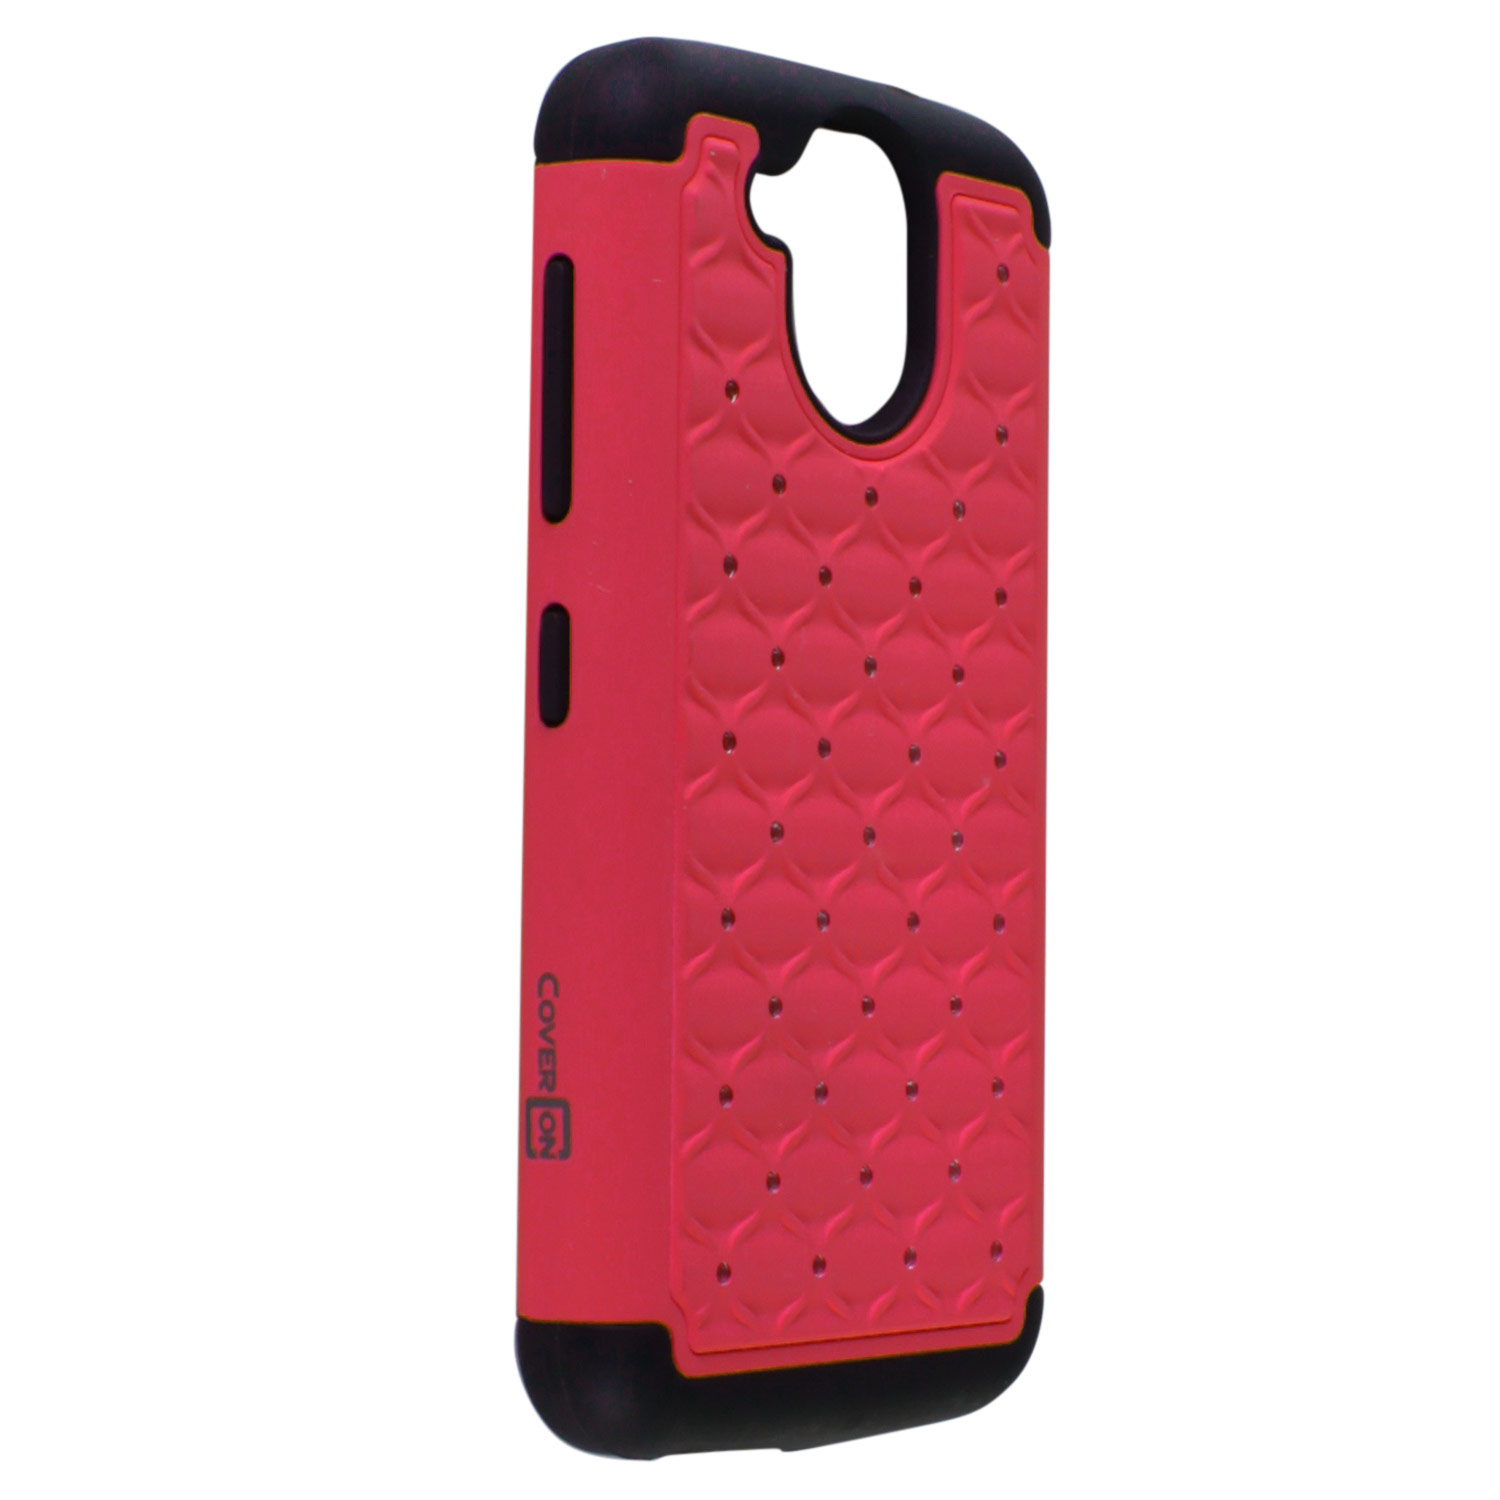 huge selection of 363b8 fbc18 Details about For HTC Desire 526 Case - Hot Pink/Black Hybrid Diamond Bling  Skin Phone Cover